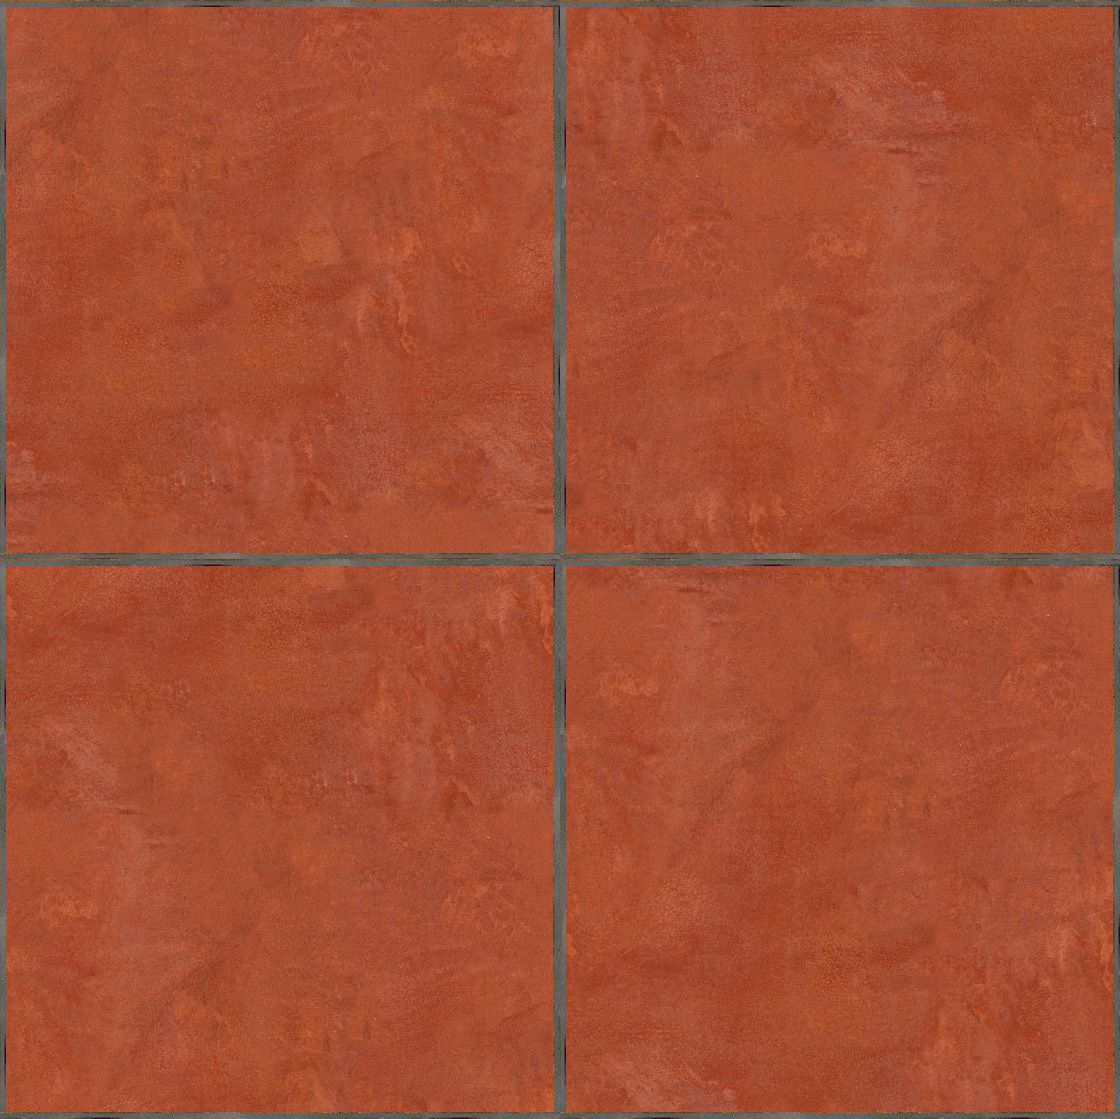 Texturise Free Seamless Tileable Textures And Maps Textures With Bump Specular And Displacement Maps For 3ds Terracotta Tiles Ceramic Floor Tile Tiles Texture